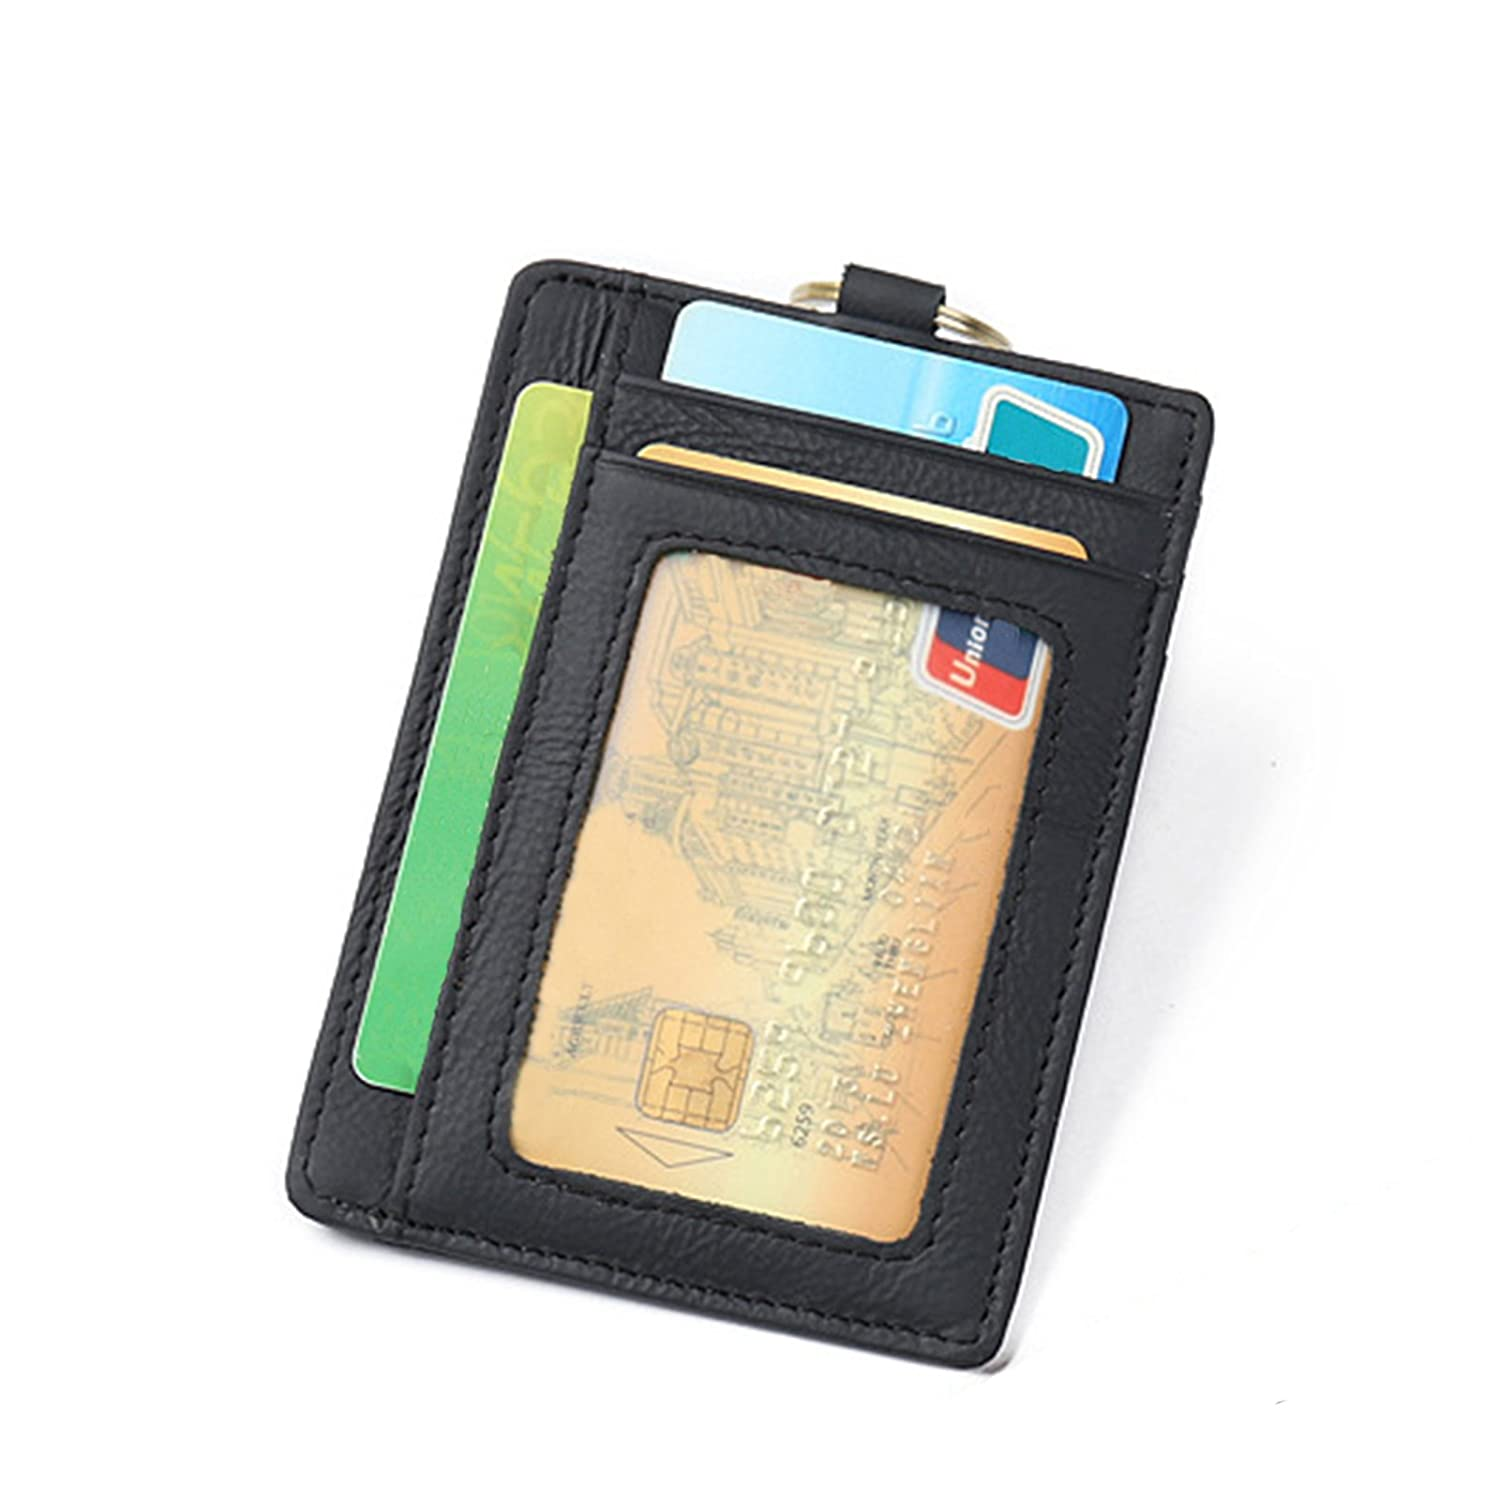 RFID Front Pocket Wallet Minimalist Wallet Slim Credit Card Holder Genuine Leather iztor R24242